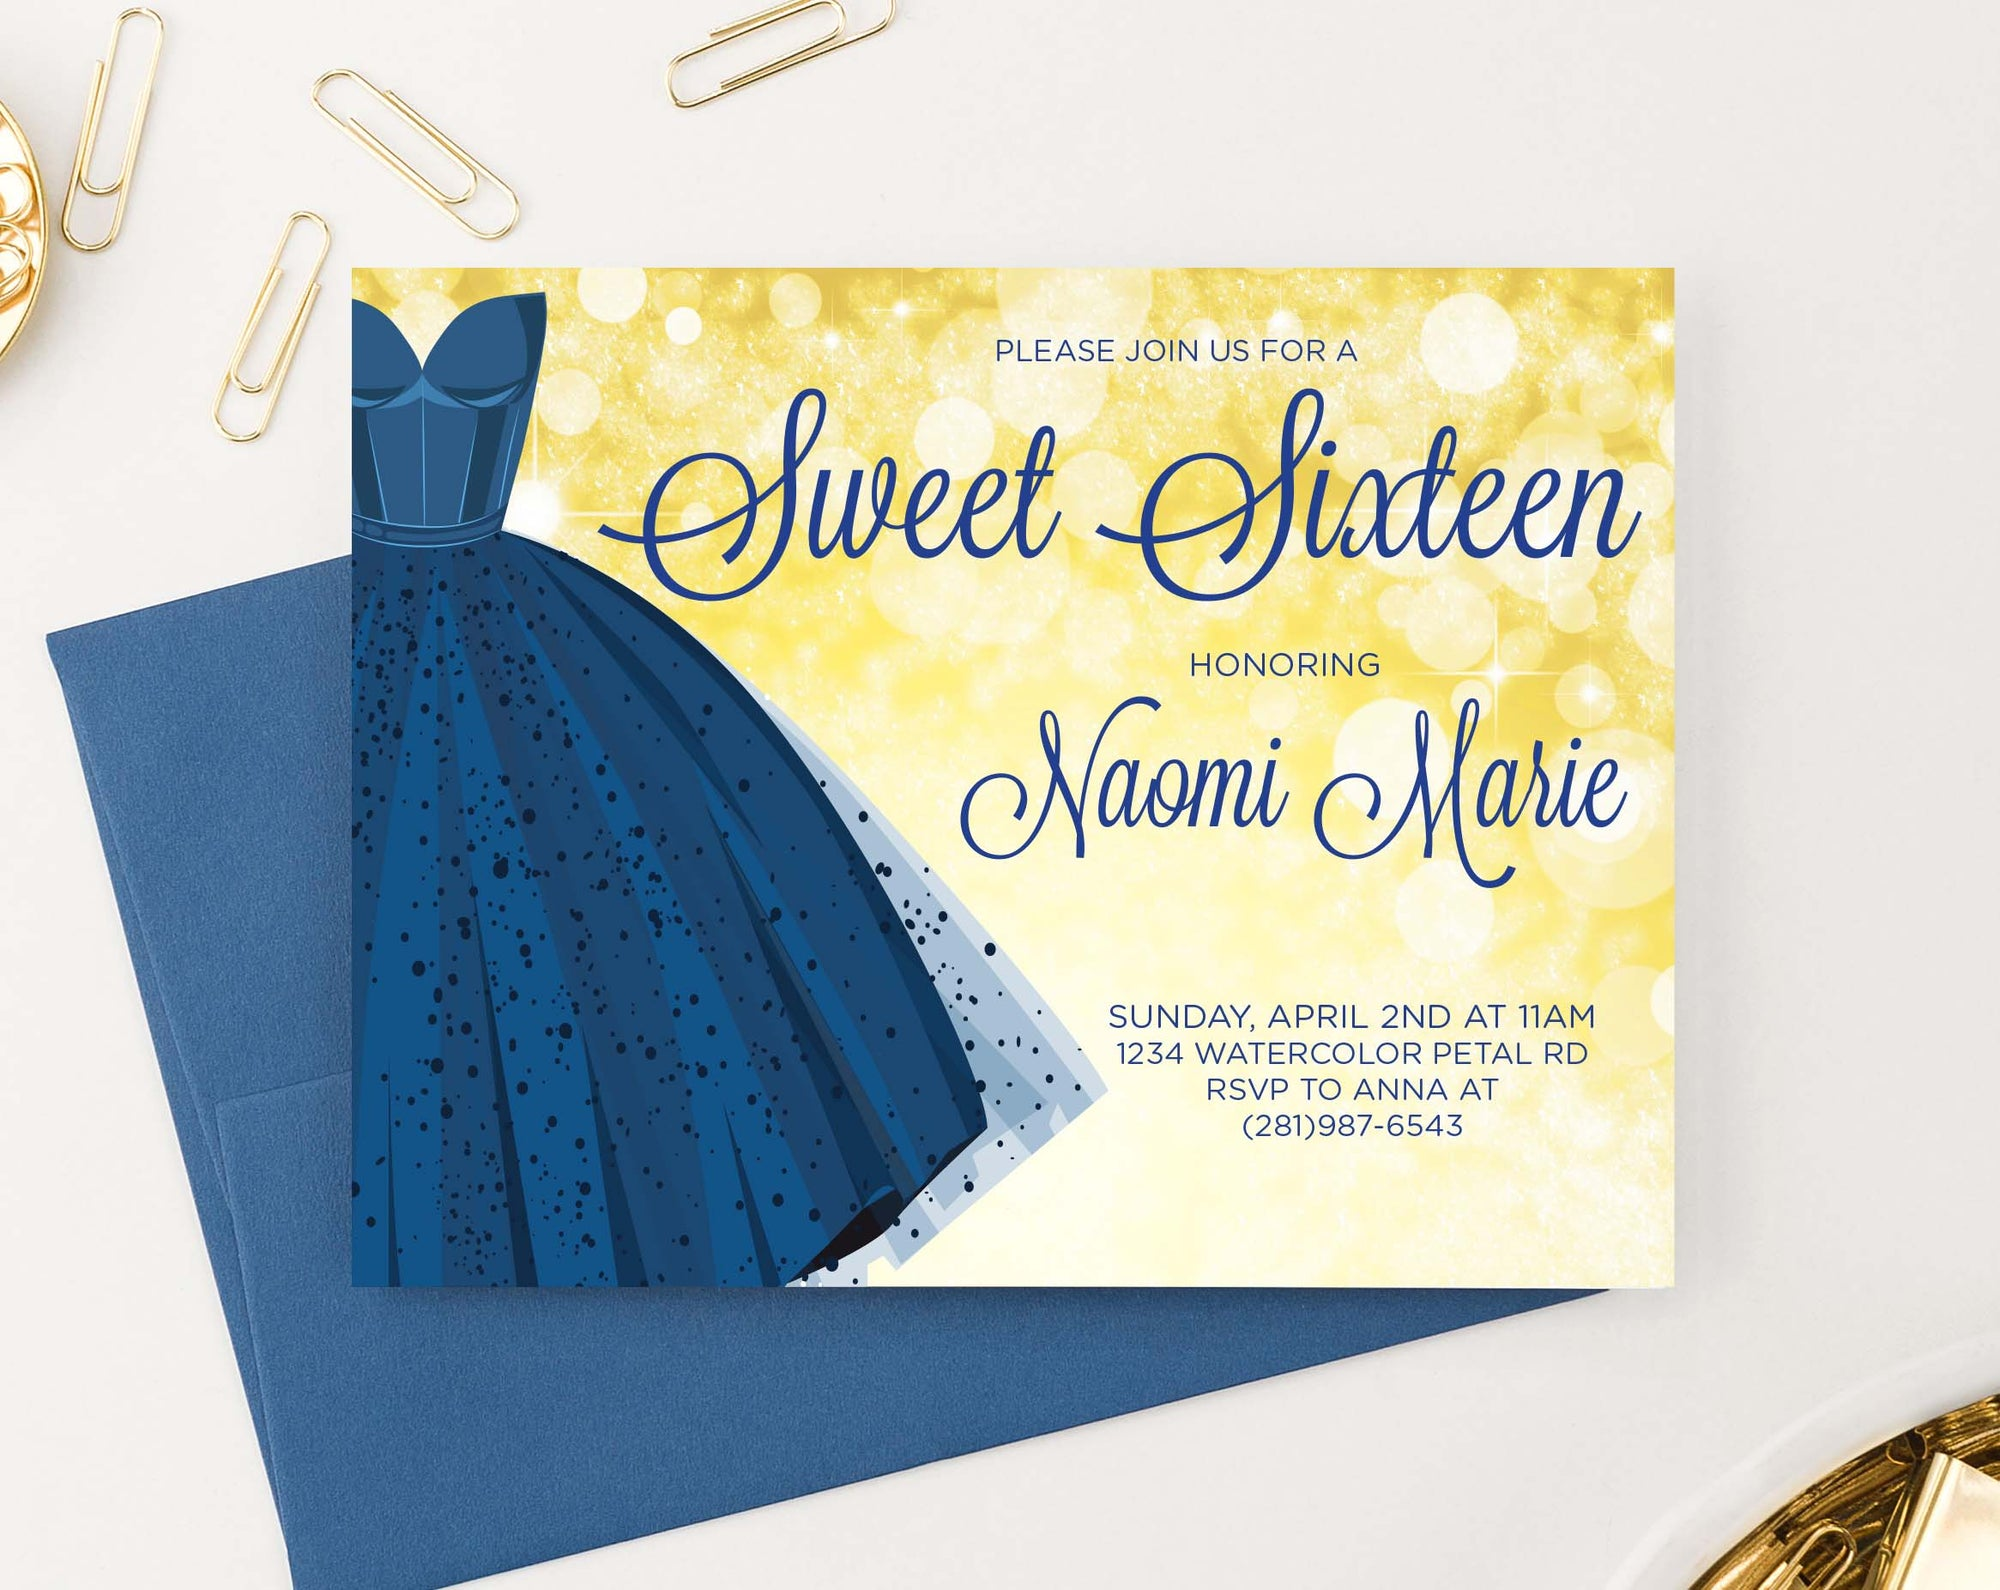 SSI003 Elegant blue dress sweet sixteen party invites personalized gold horizontal2